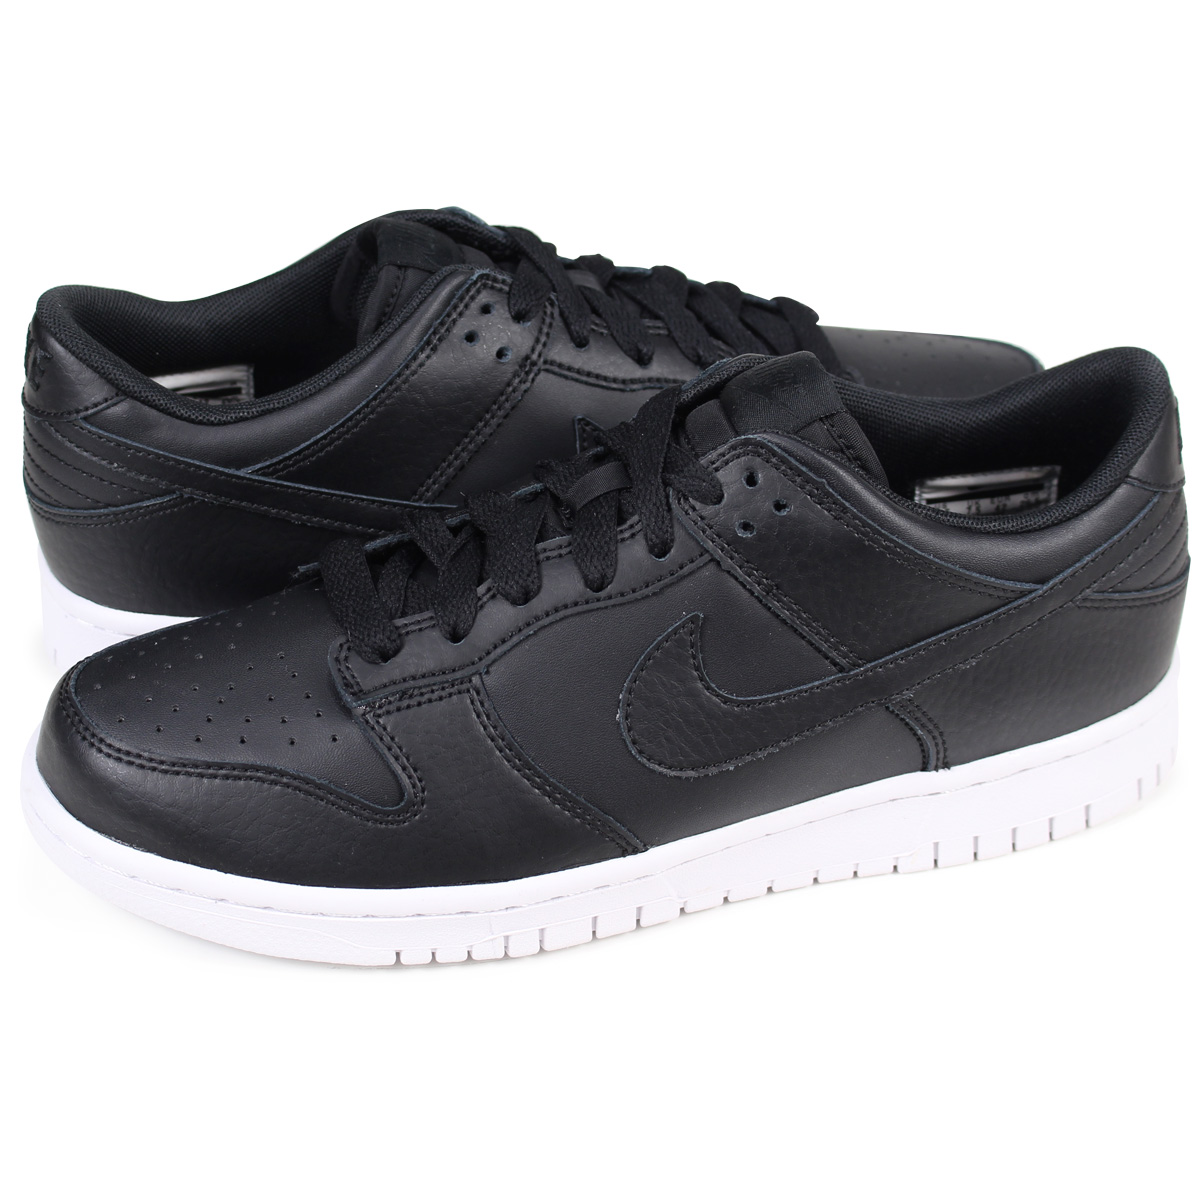 official photos a71d6 92f99 Nike NIKE dunk low sneakers DUNK LOW men 904,234-003 shoes black 71  Shinnyu load